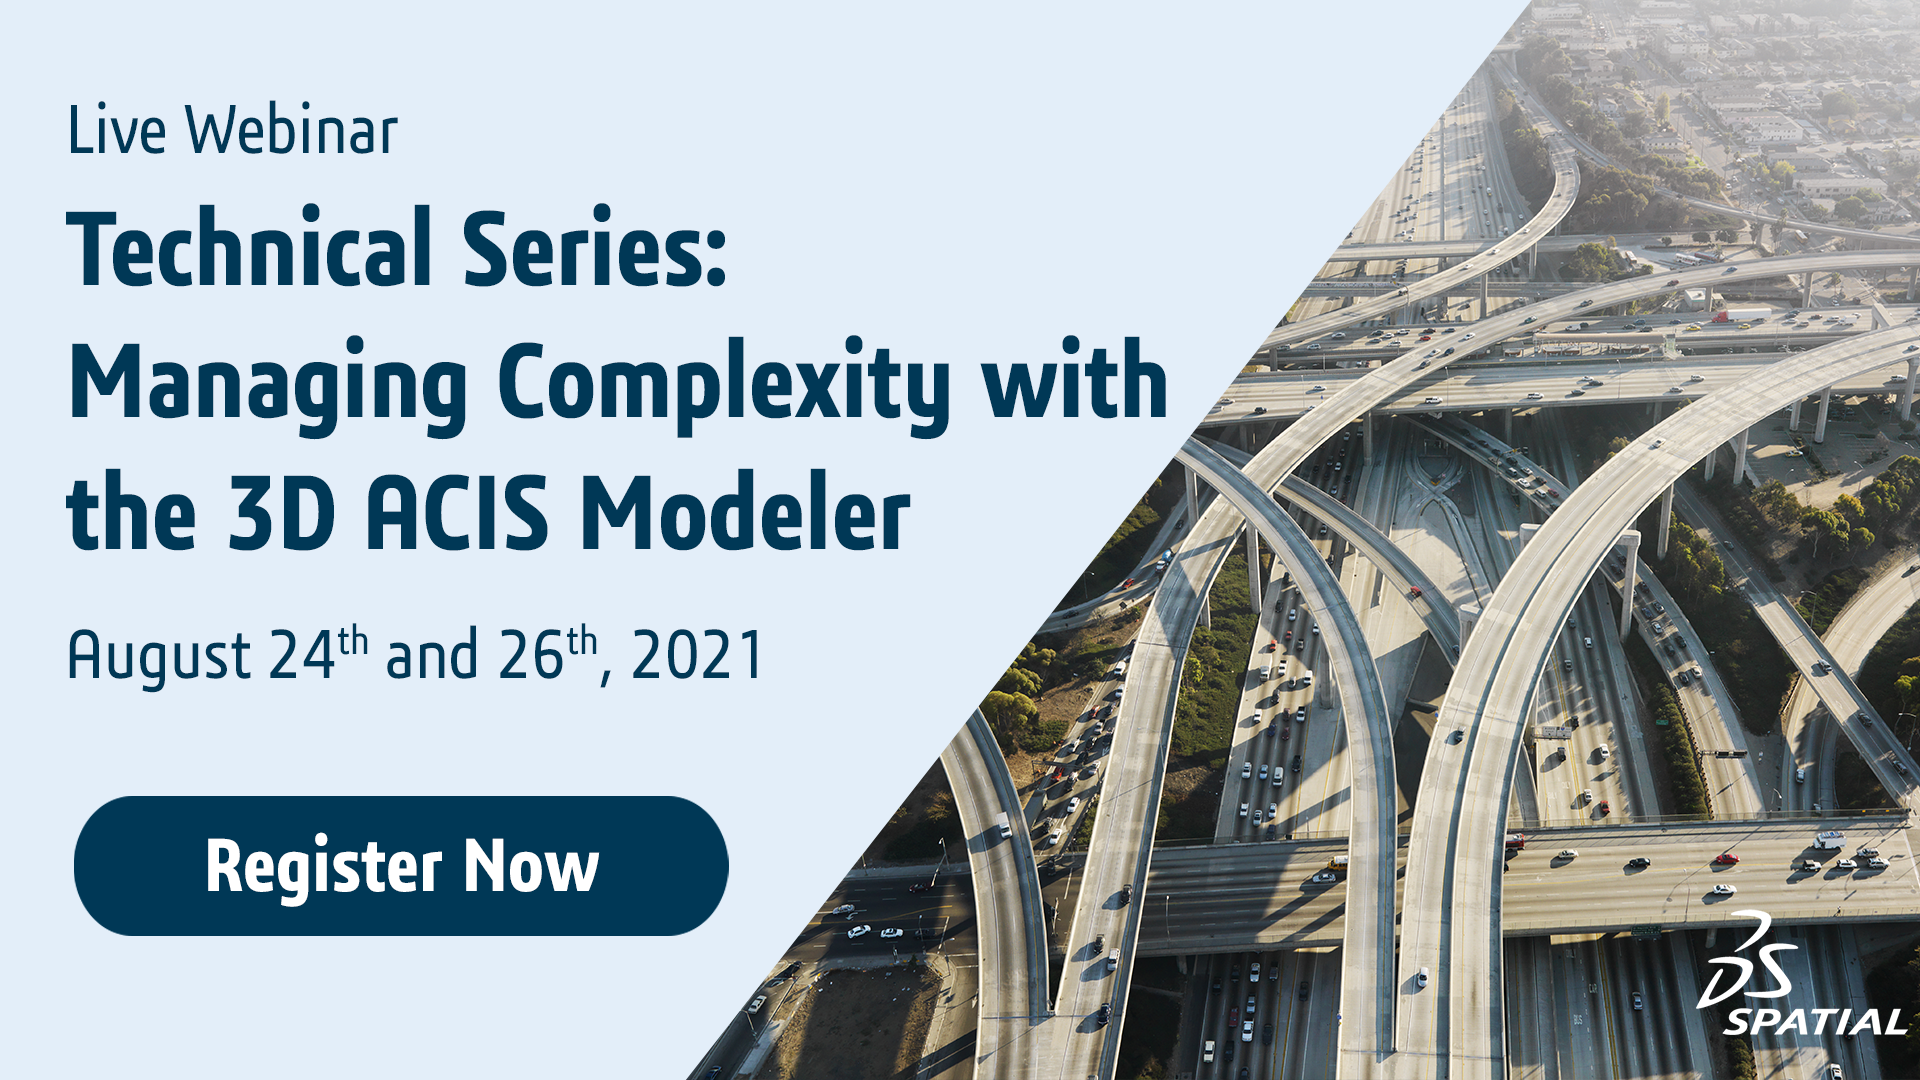 Managing Complexity with the 3D ACIS Modeler